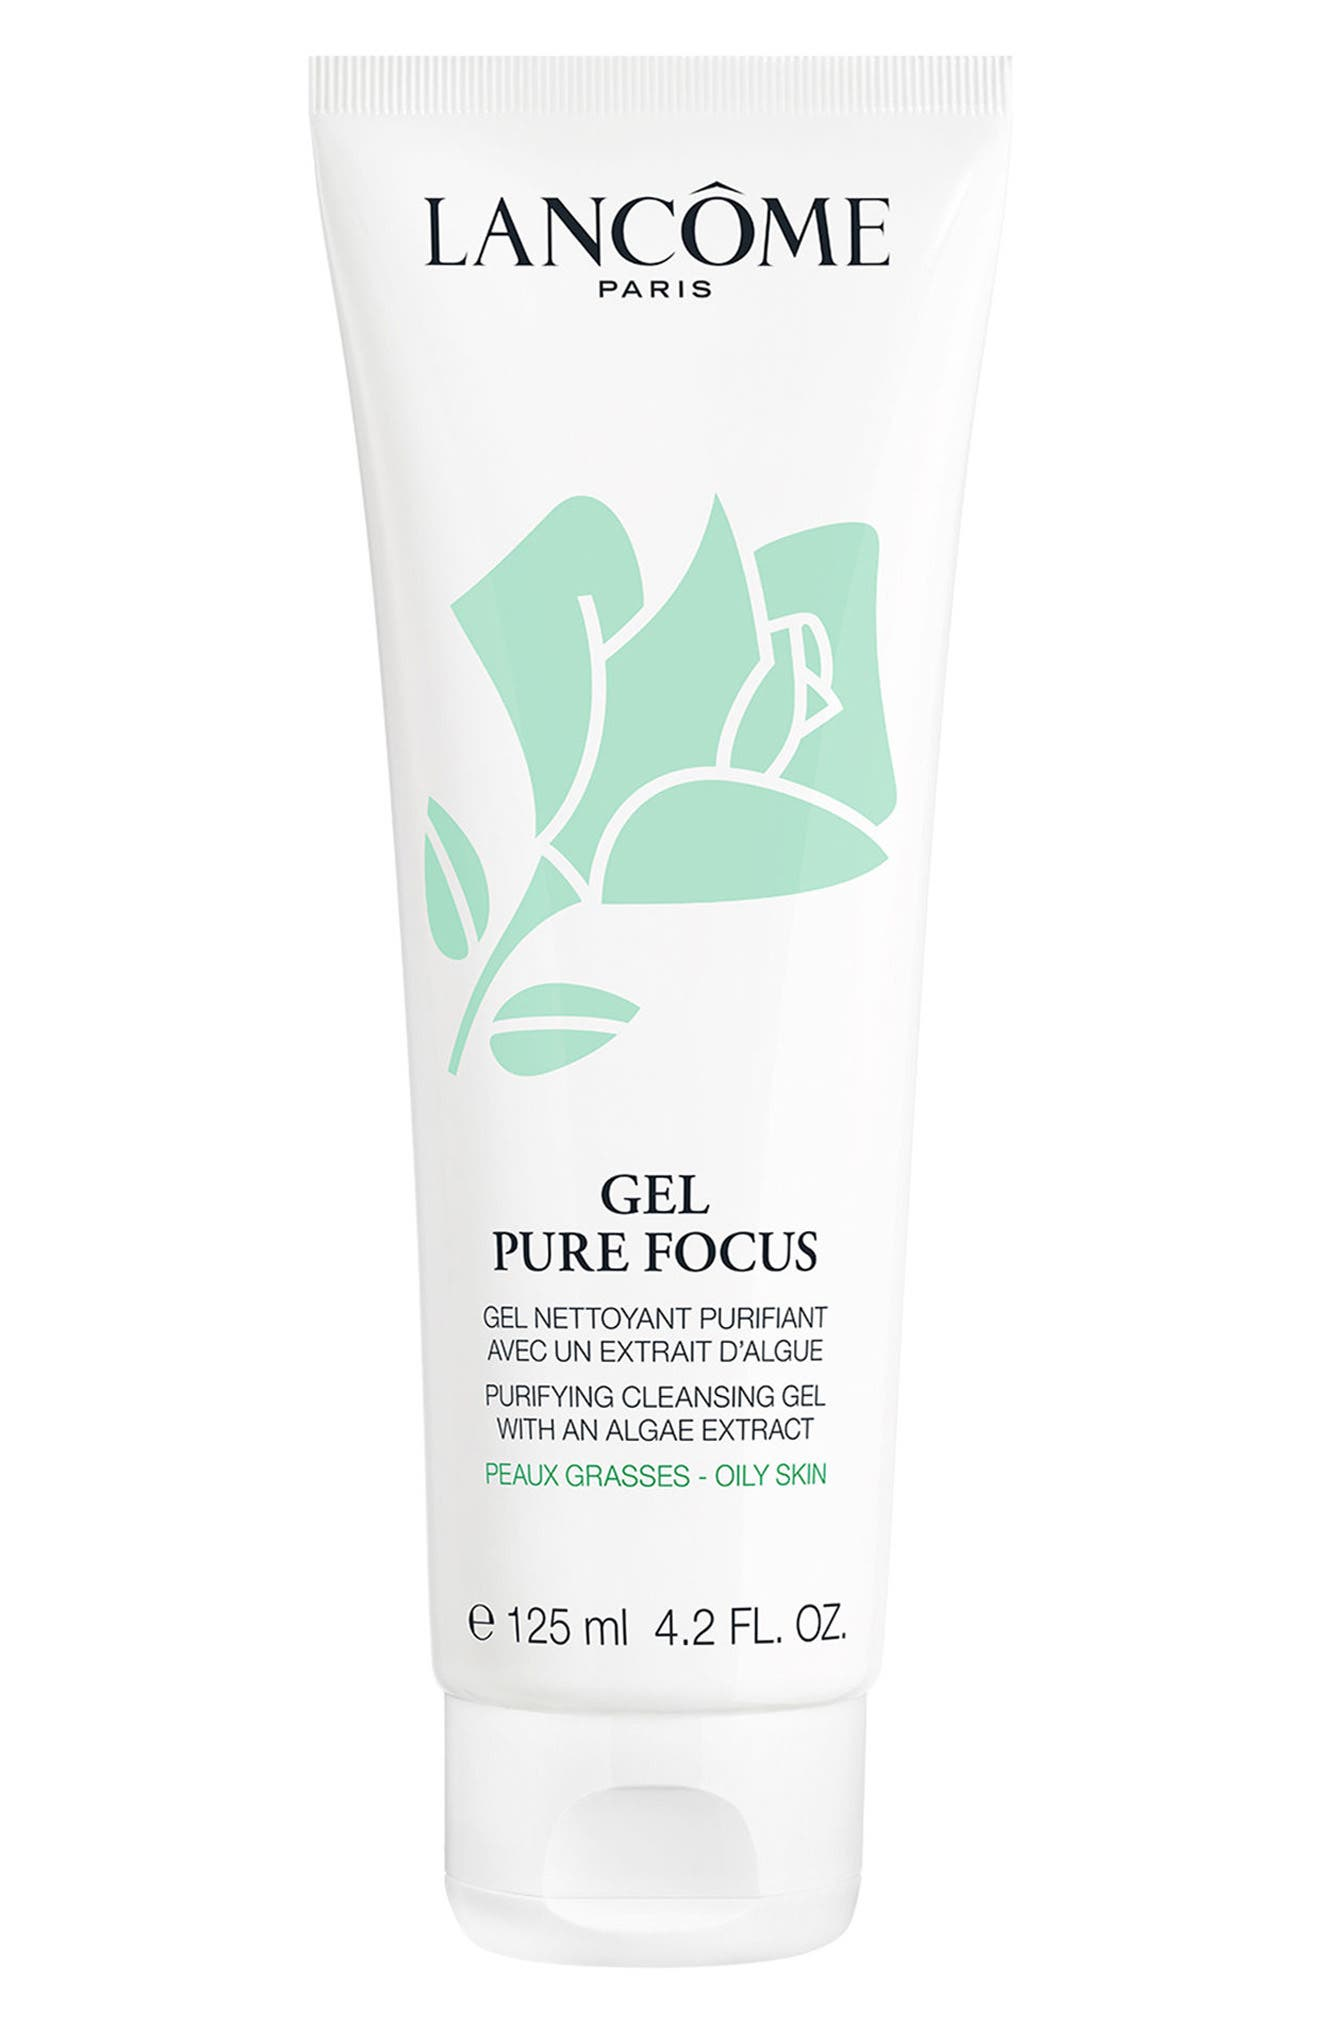 Alternate Image 1 Selected - Lancôme Gel Pure Focus Deep Purifying Oily Skin Cleanser